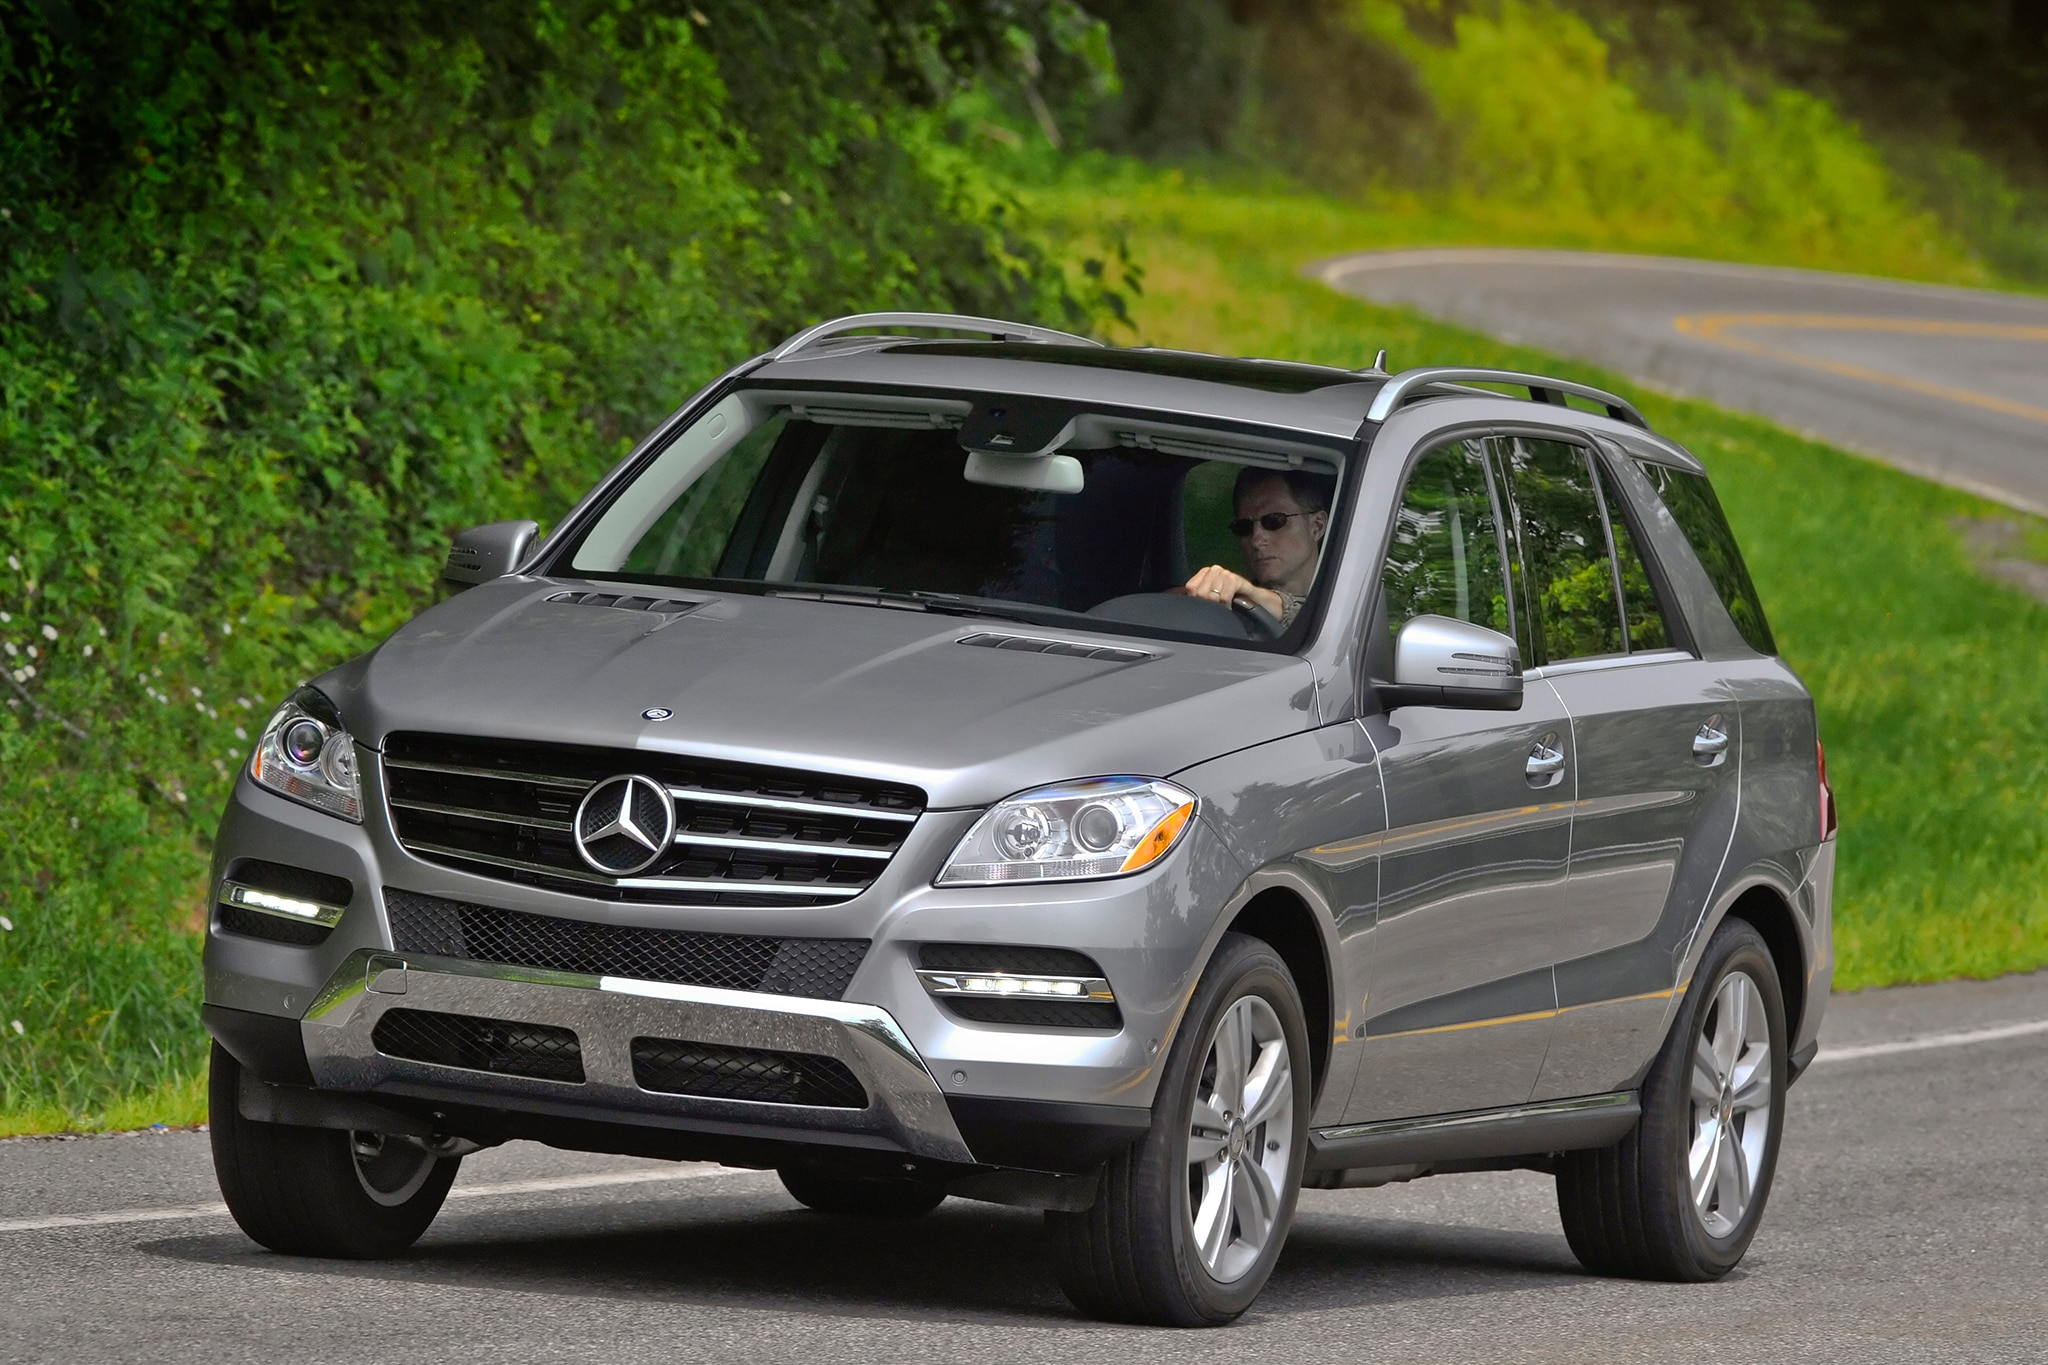 2014 mercedes benz m class rated top safety pick for Mercedes benz corporate number